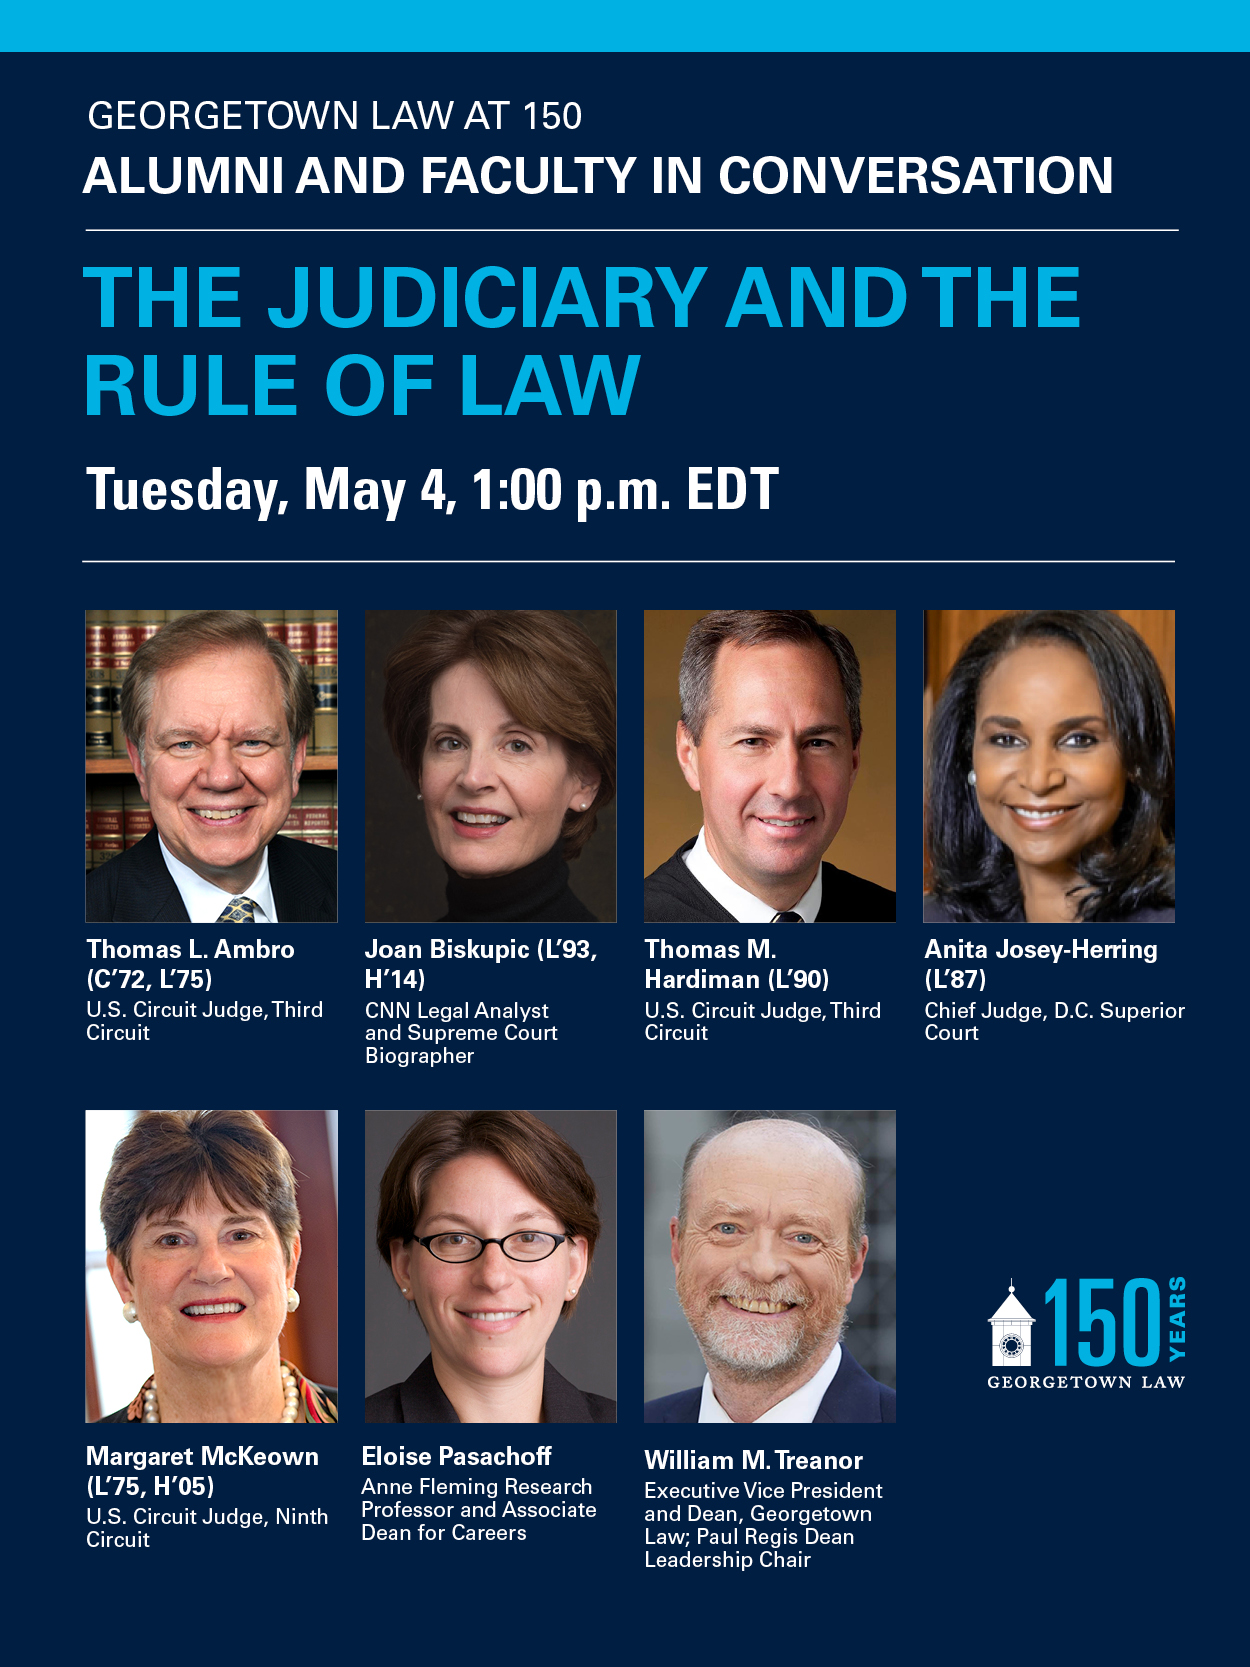 Promotional Graphic Image for 150th Anniversary Virtual Event: The Judiciary and the Rule of Law